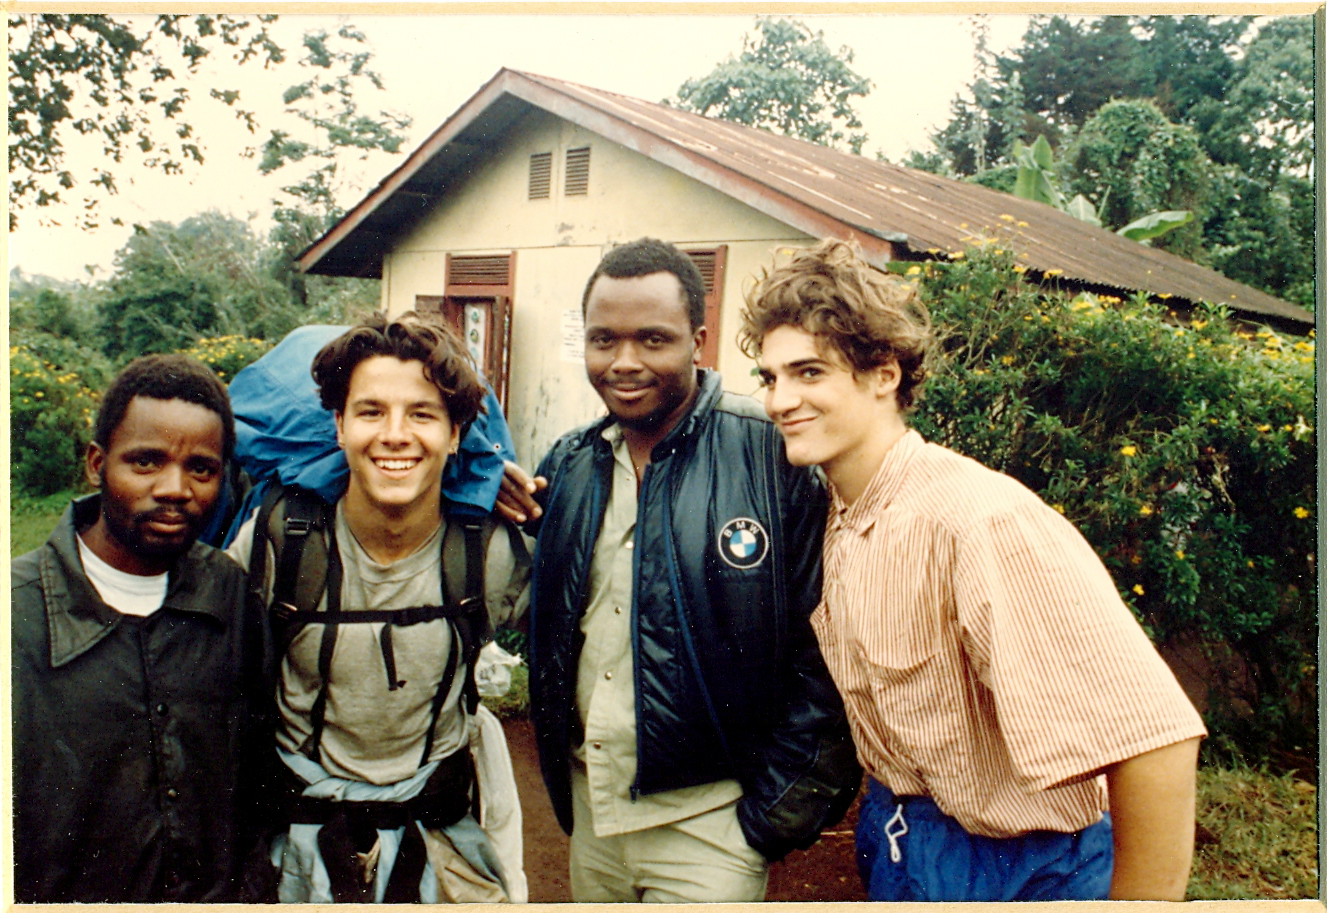 On the slopes of Mt. Kilimanjaro, 1992. The man next to me was the guy I handed a little incentive to, so we could keep climbing